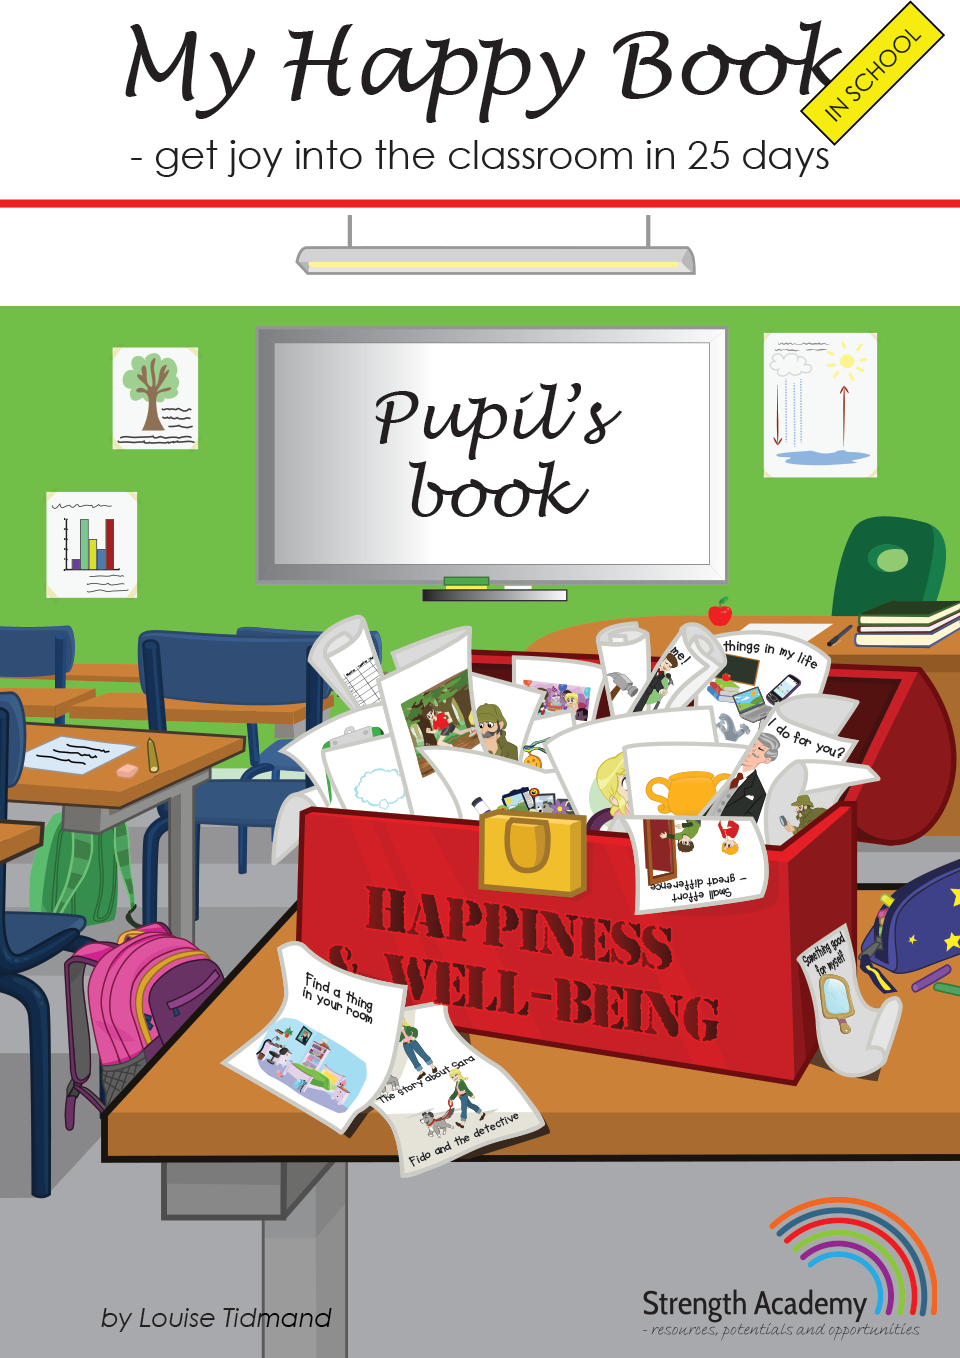 My Happy Book in School - get joy into the classroom in 25 days, pupil's book